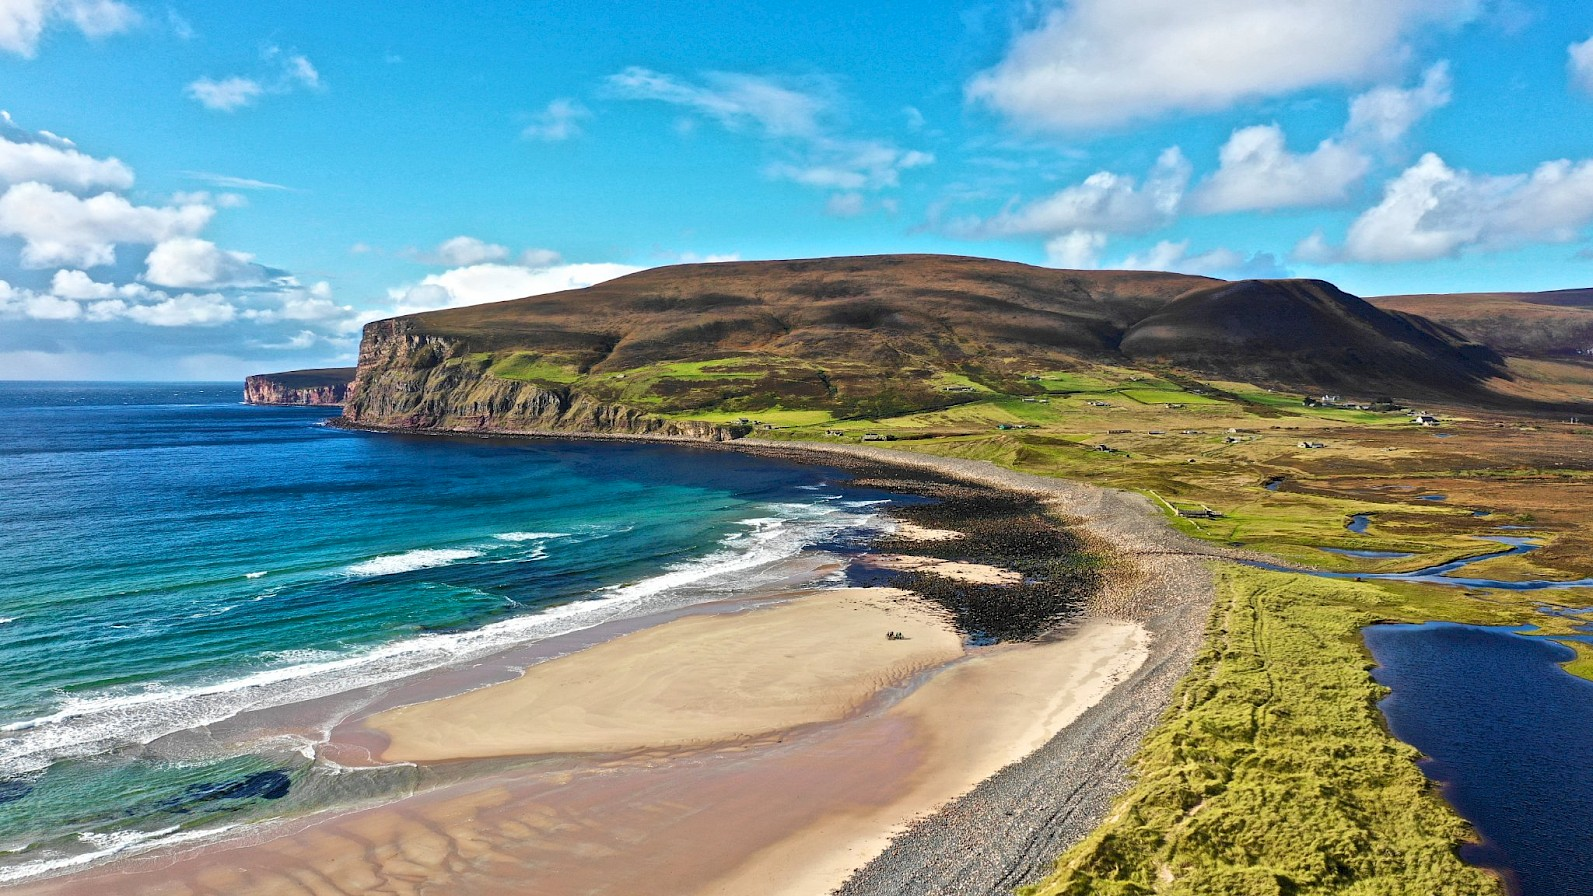 Is is because you can visit locations like Rackwick in Hoy, and be the only person on a beautiful beach?